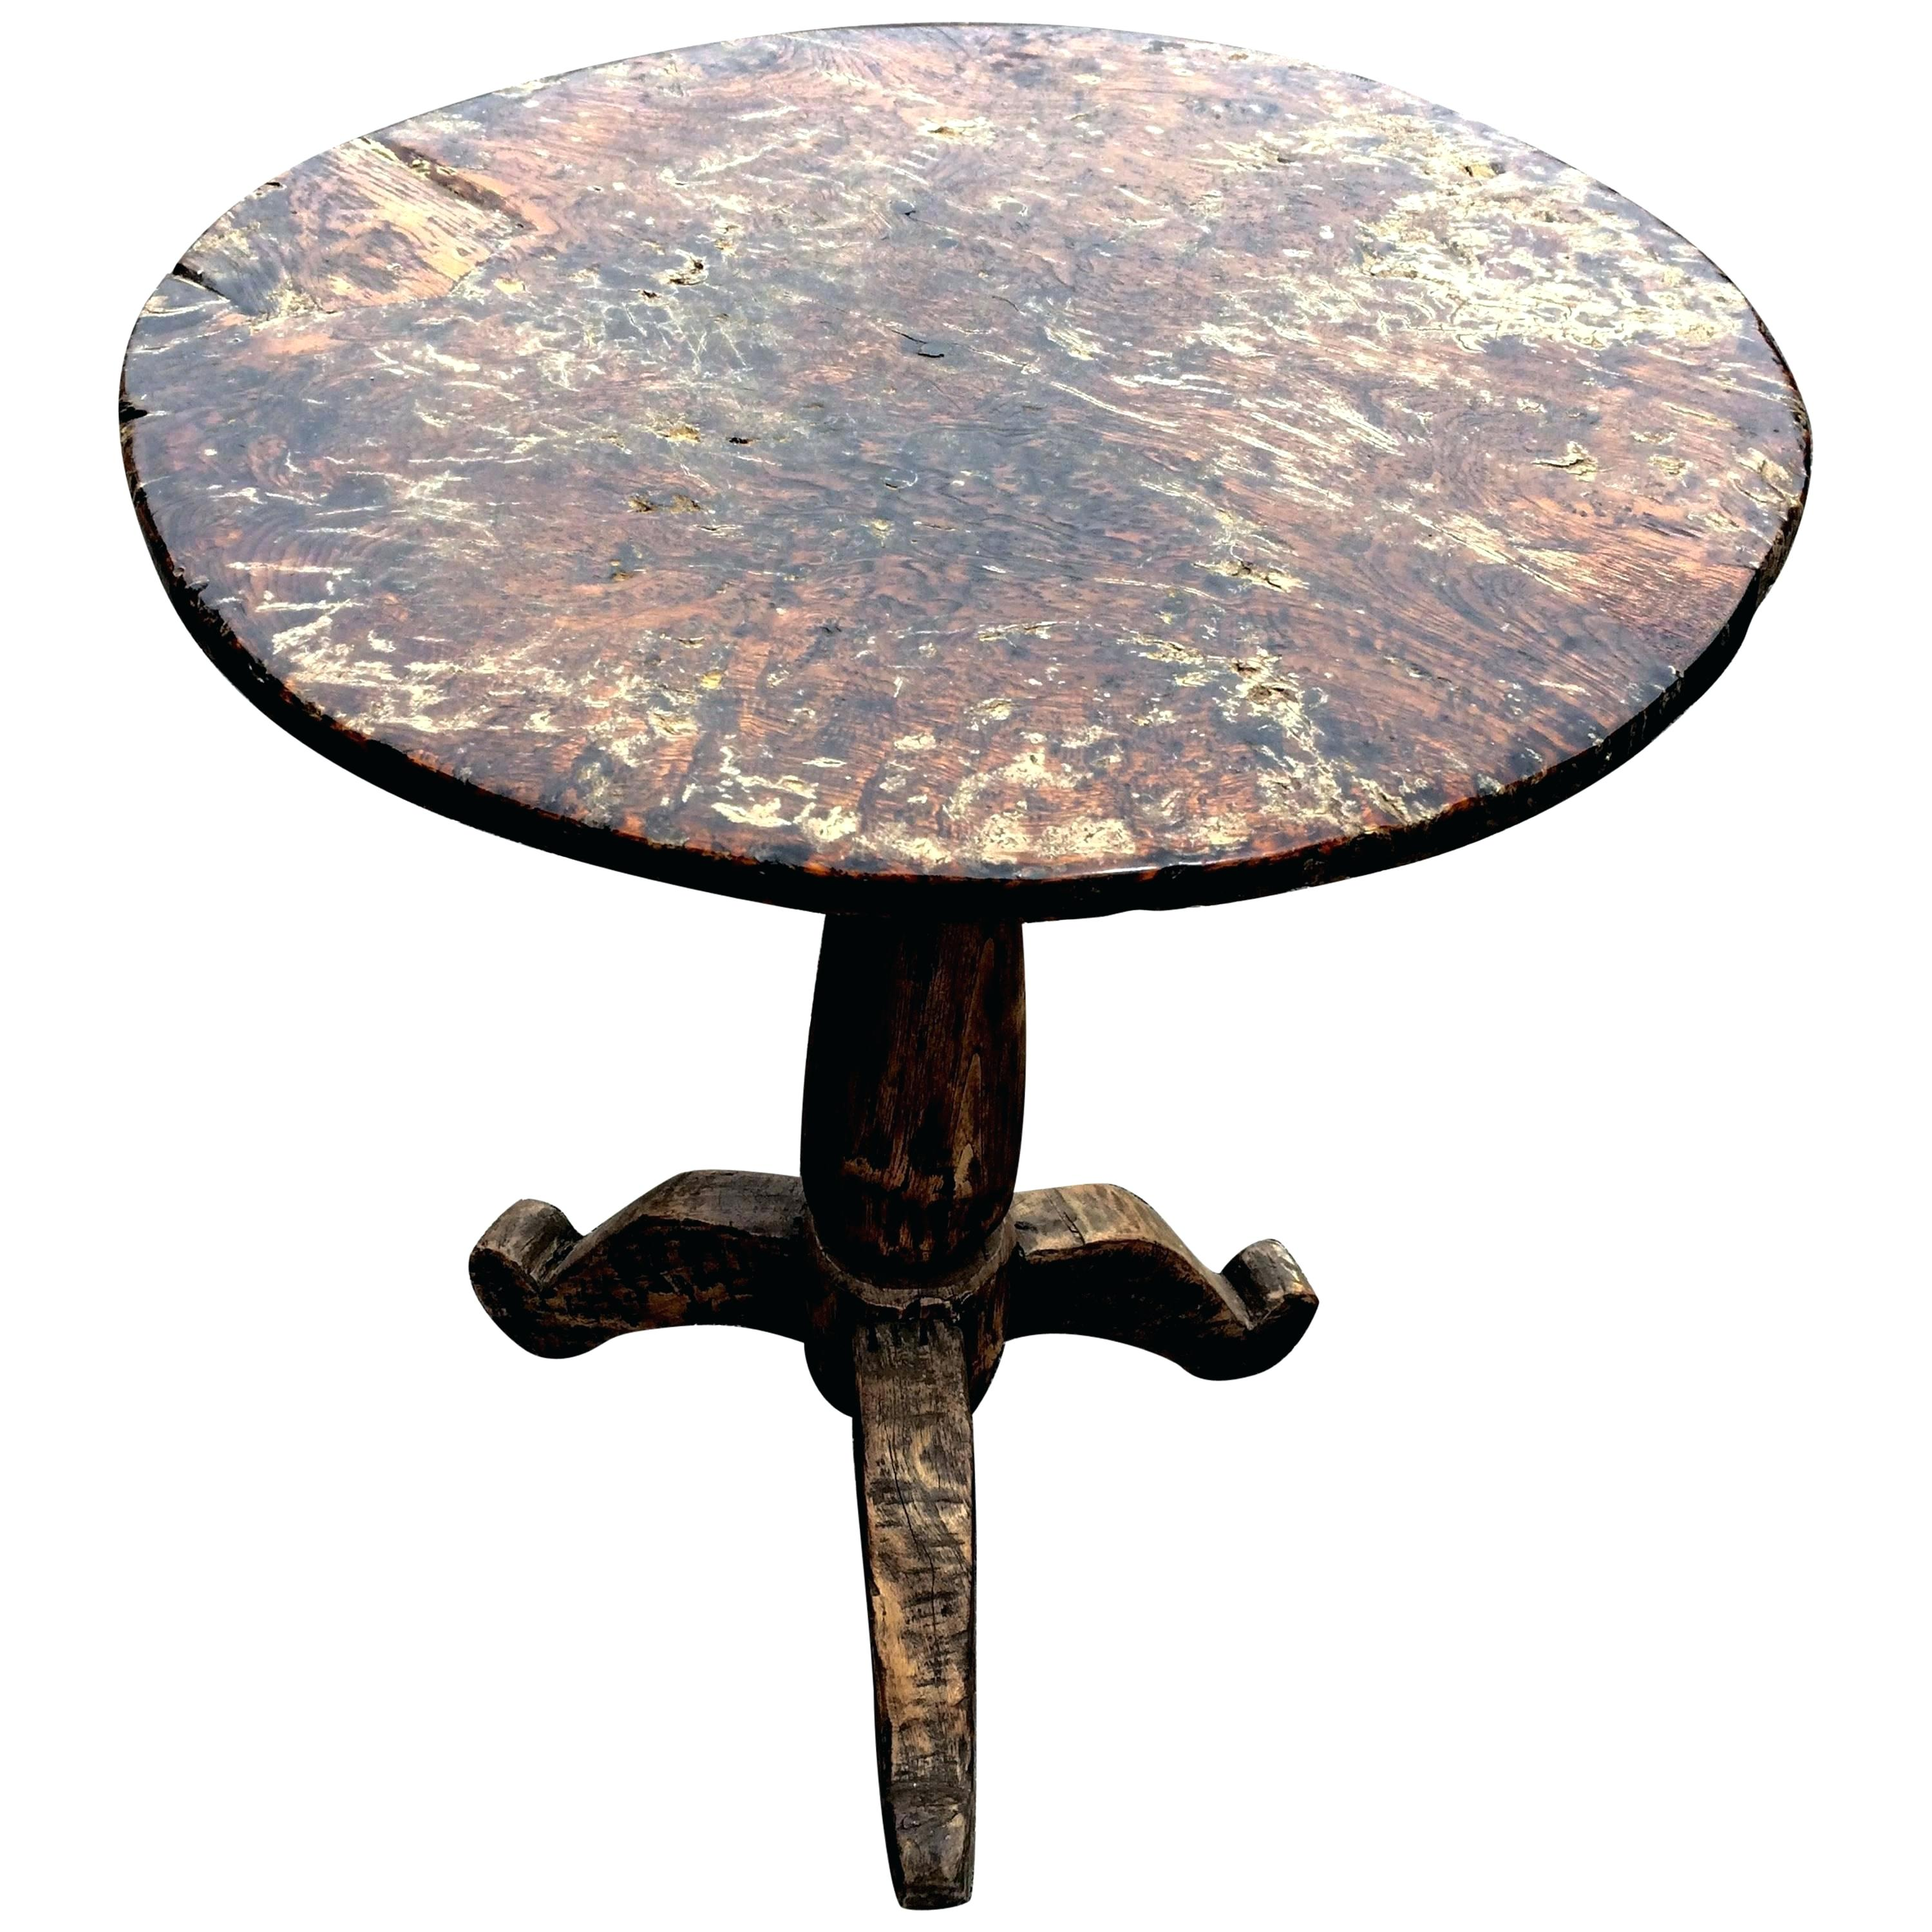 round pedestal side table turned contemporary superb primitive carved wood end for black accent fabric placemats oriental desk lamp ceramic outdoor furniture coffee glass with